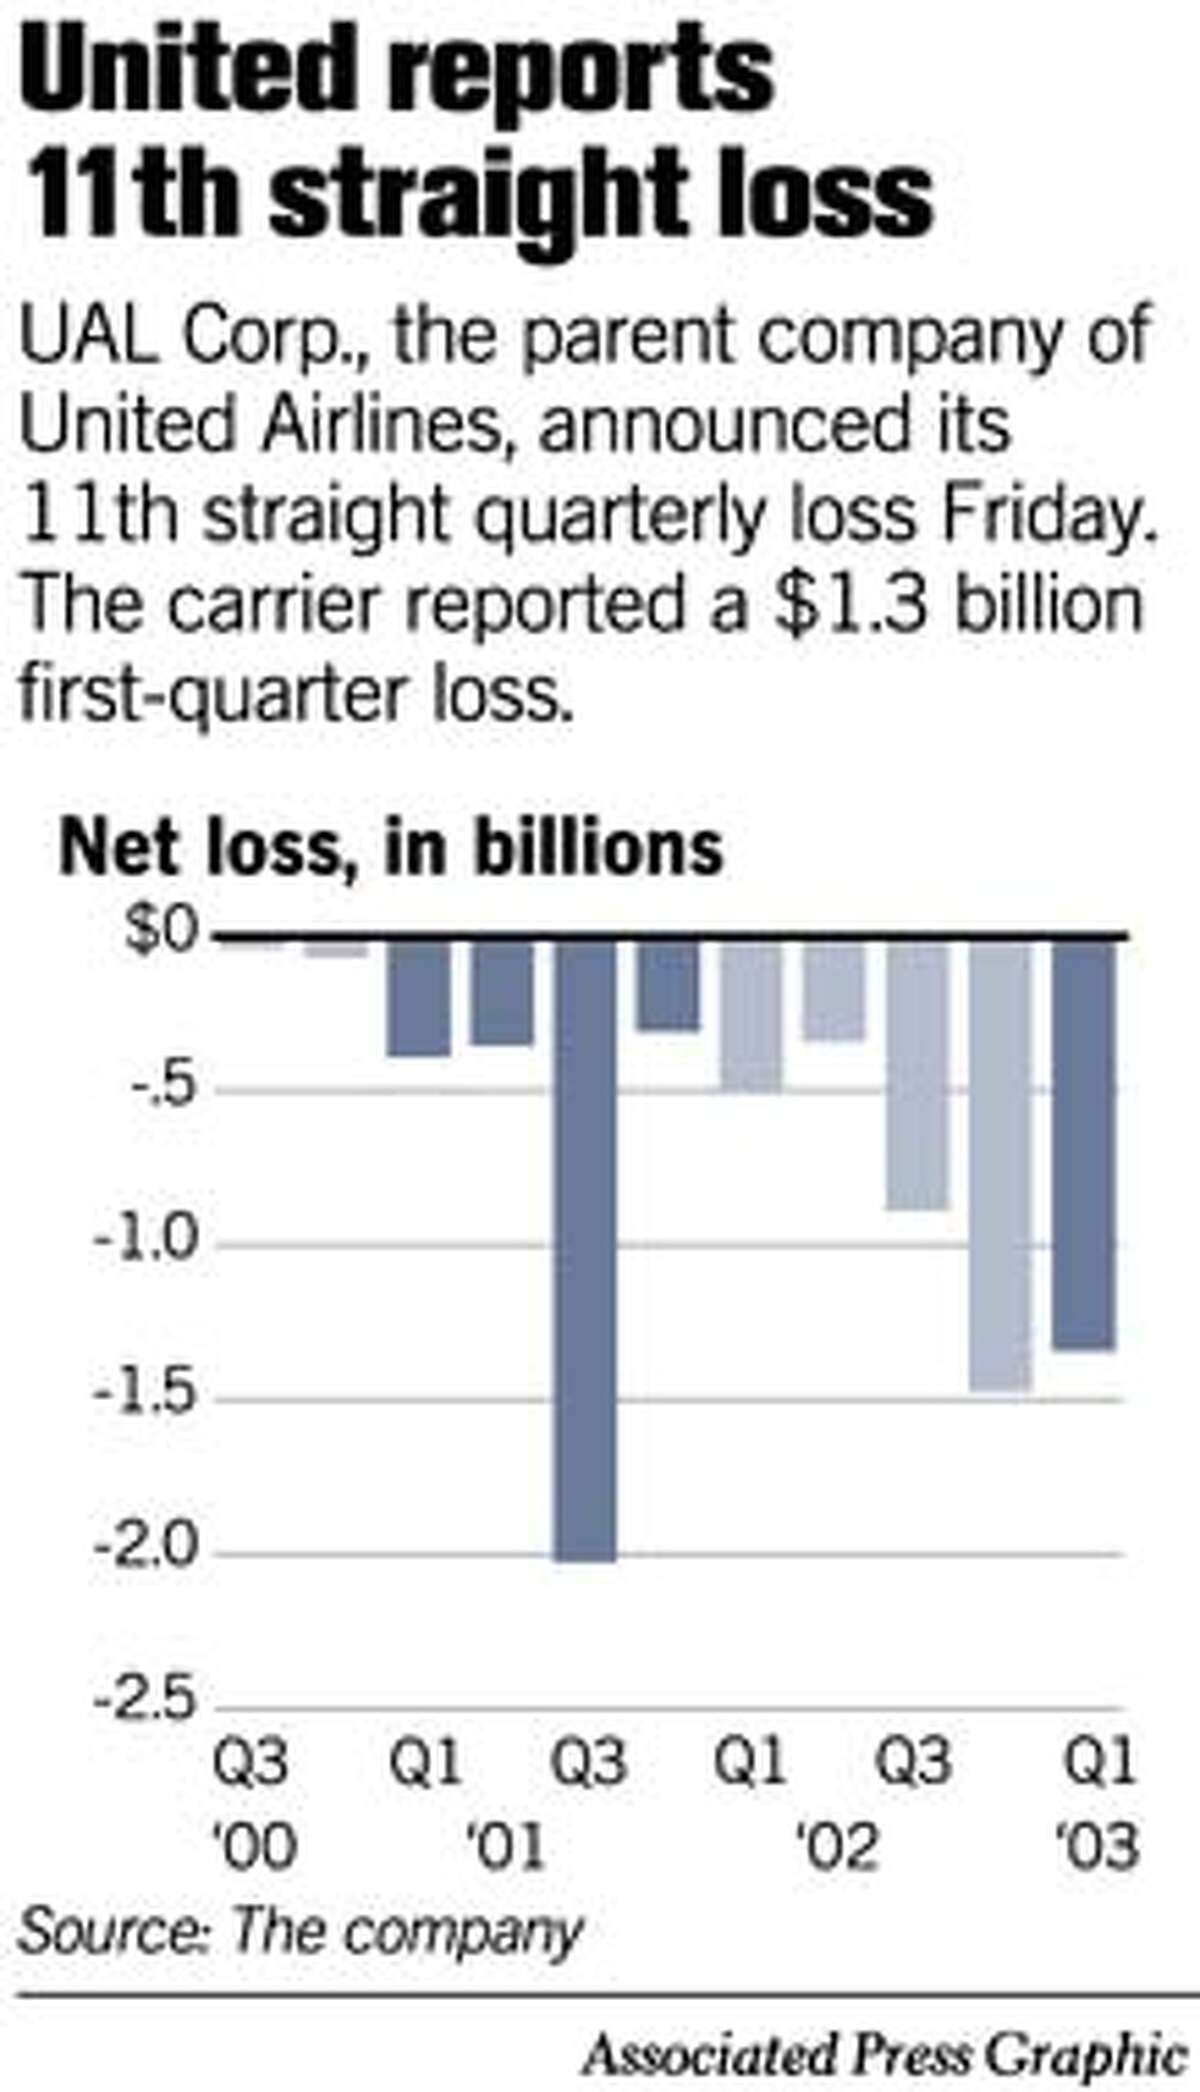 UAL's 11th Straight Loss. Associated Press Graphic